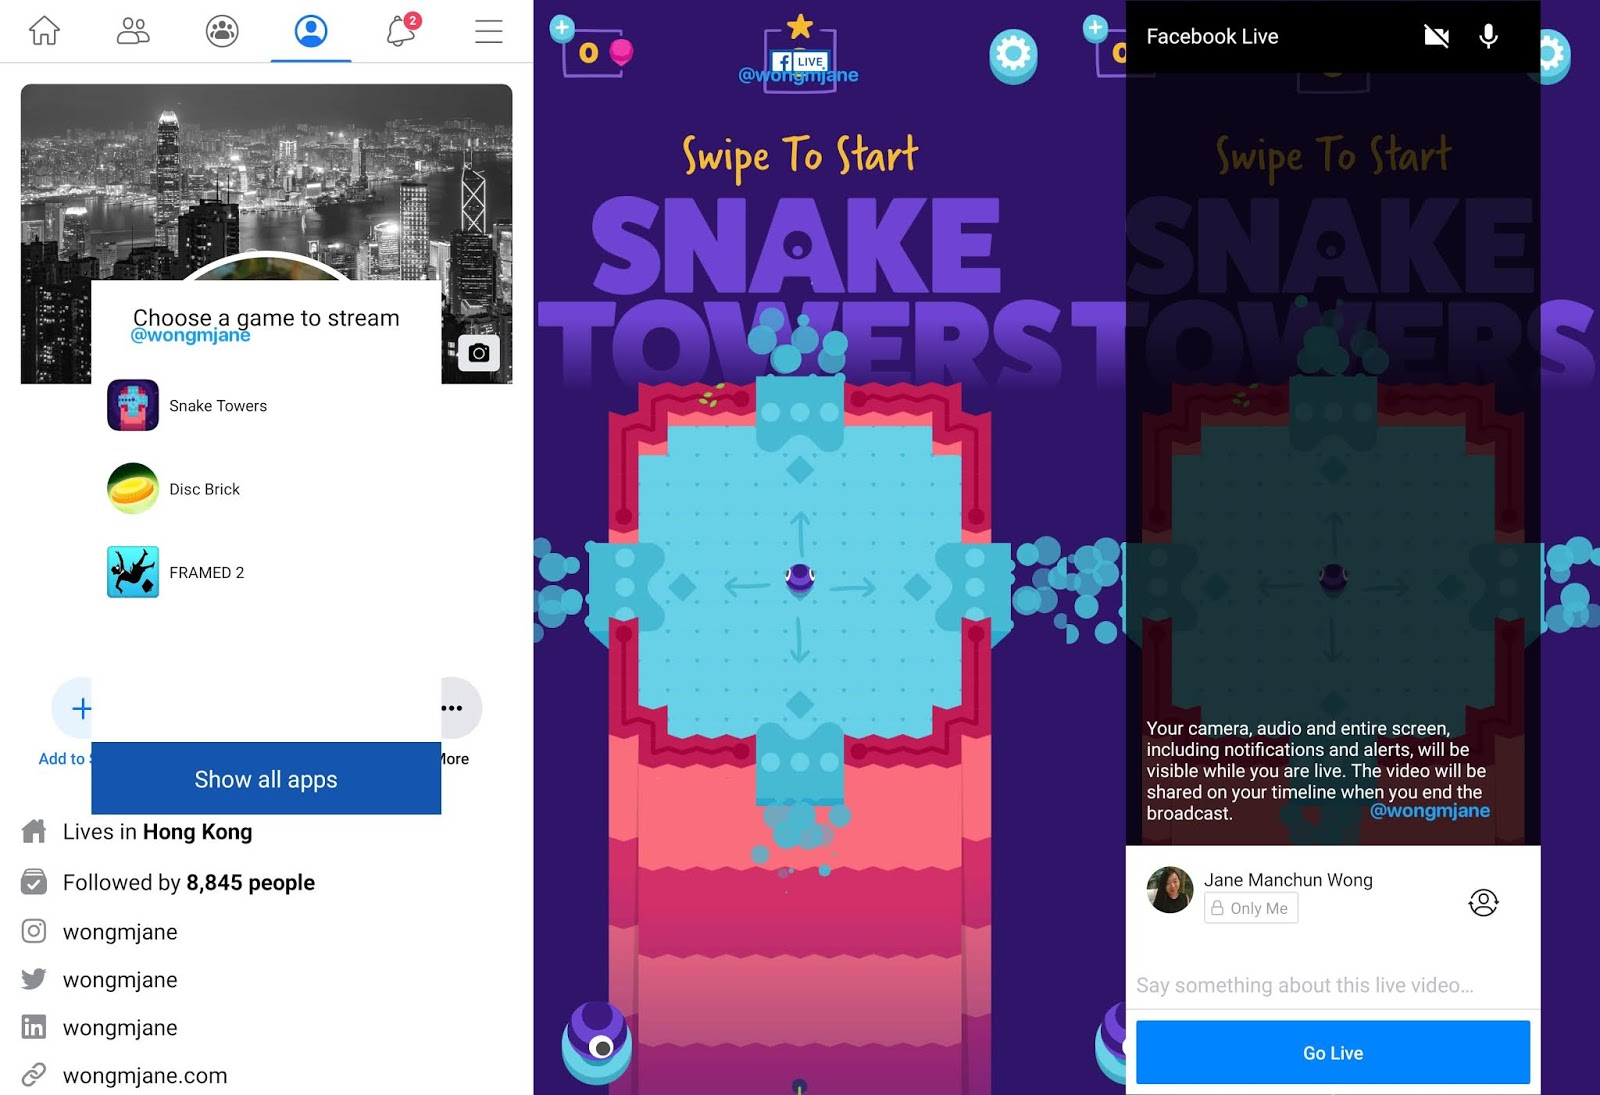 Facebook is working on streaming Android games